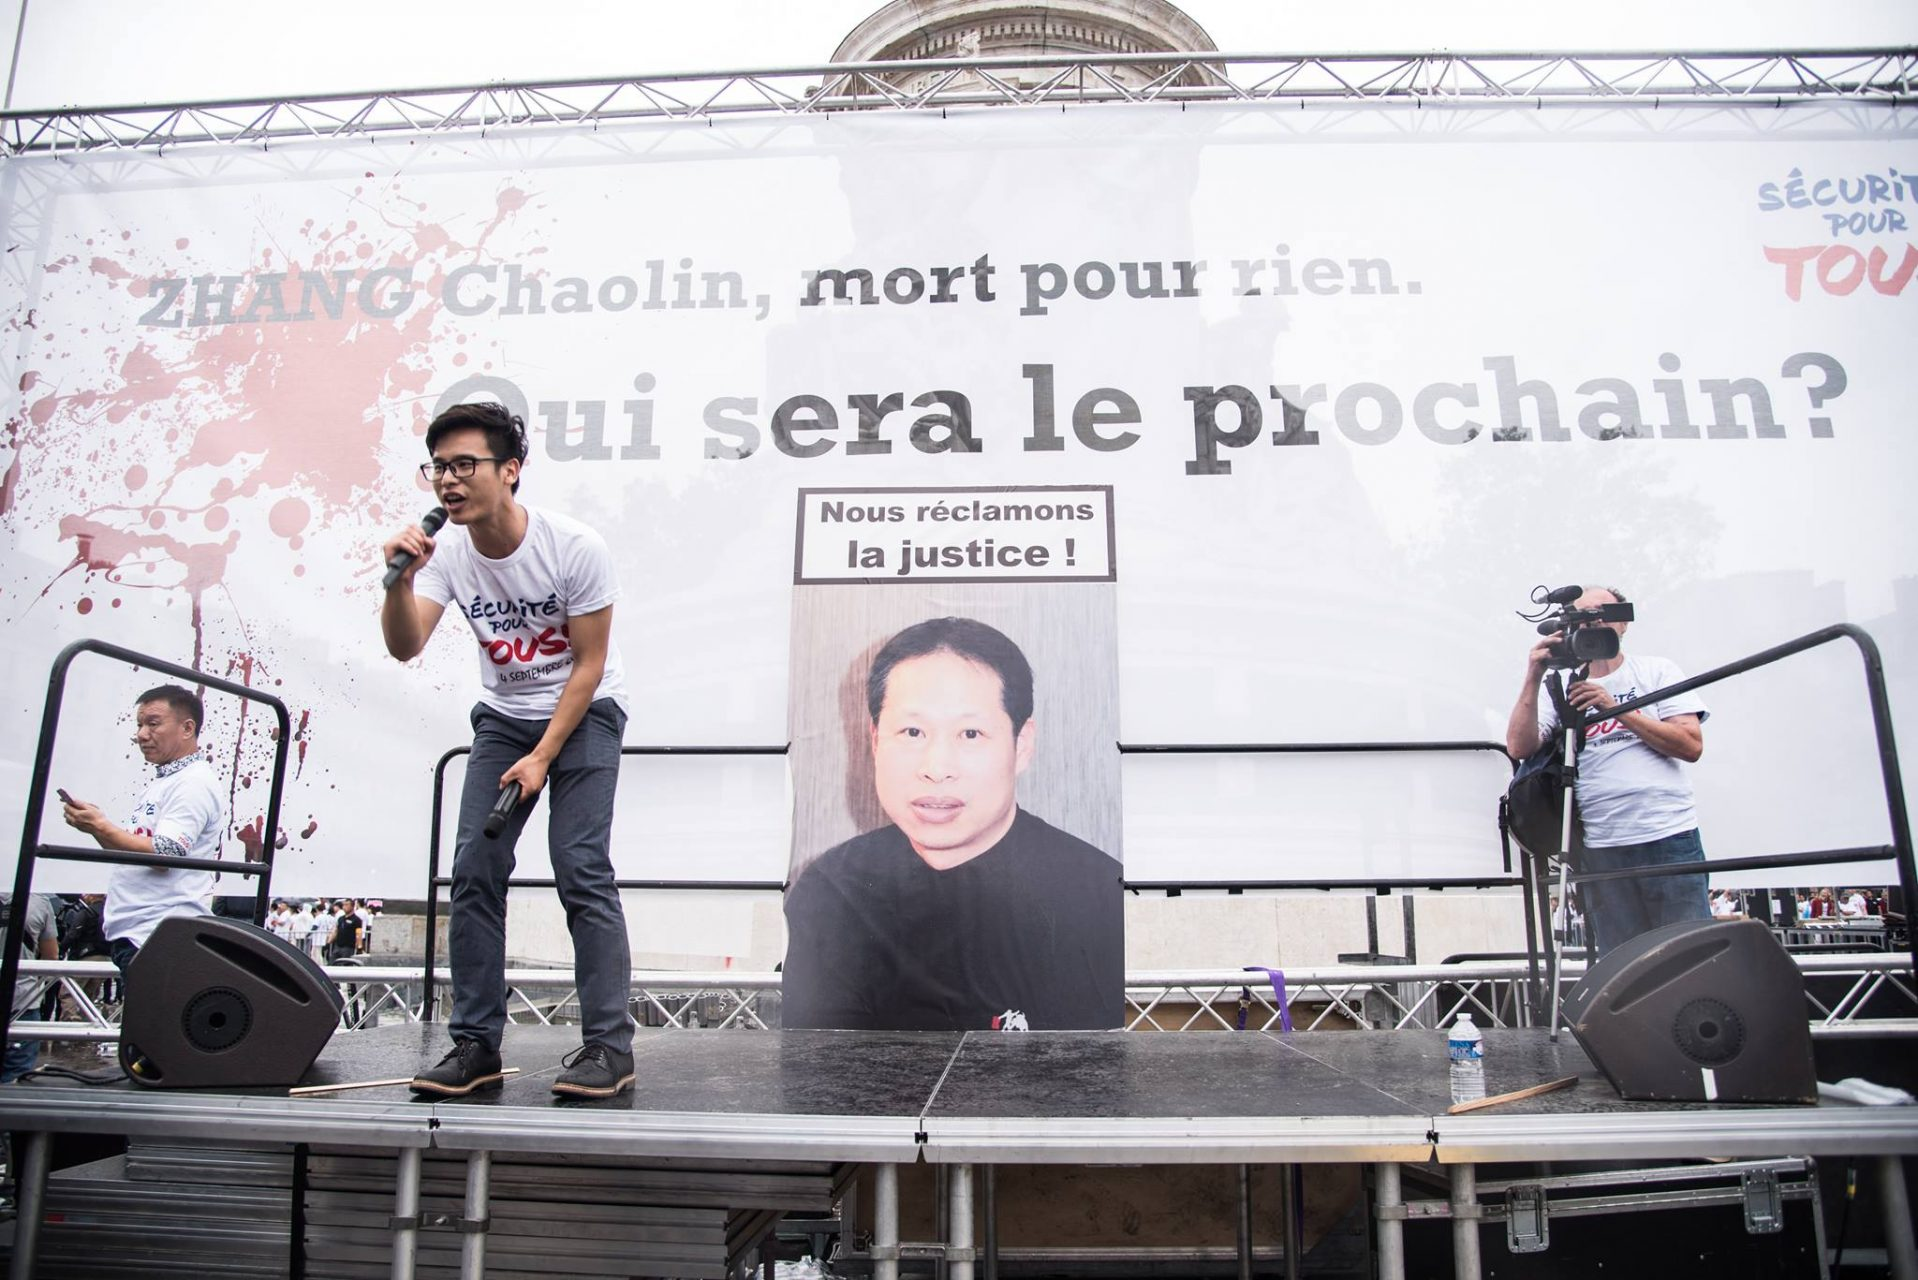 Manif communauté chinoise 5